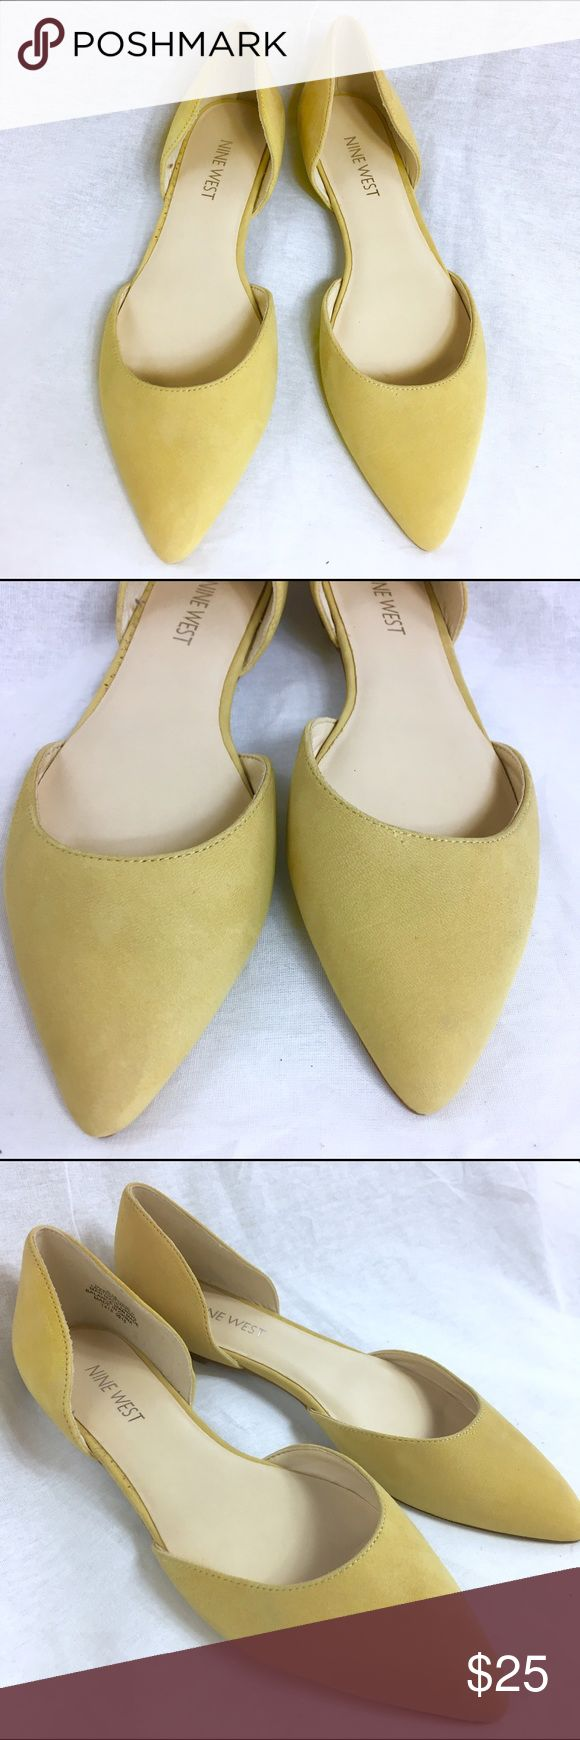 NINE WEST STARSHIP Yellow Leather Flats - Size 6M These yellow leather flats are in great condition.  They have been gently preloved.  They are a regular fit. Nine West Shoes Flats & Loafers